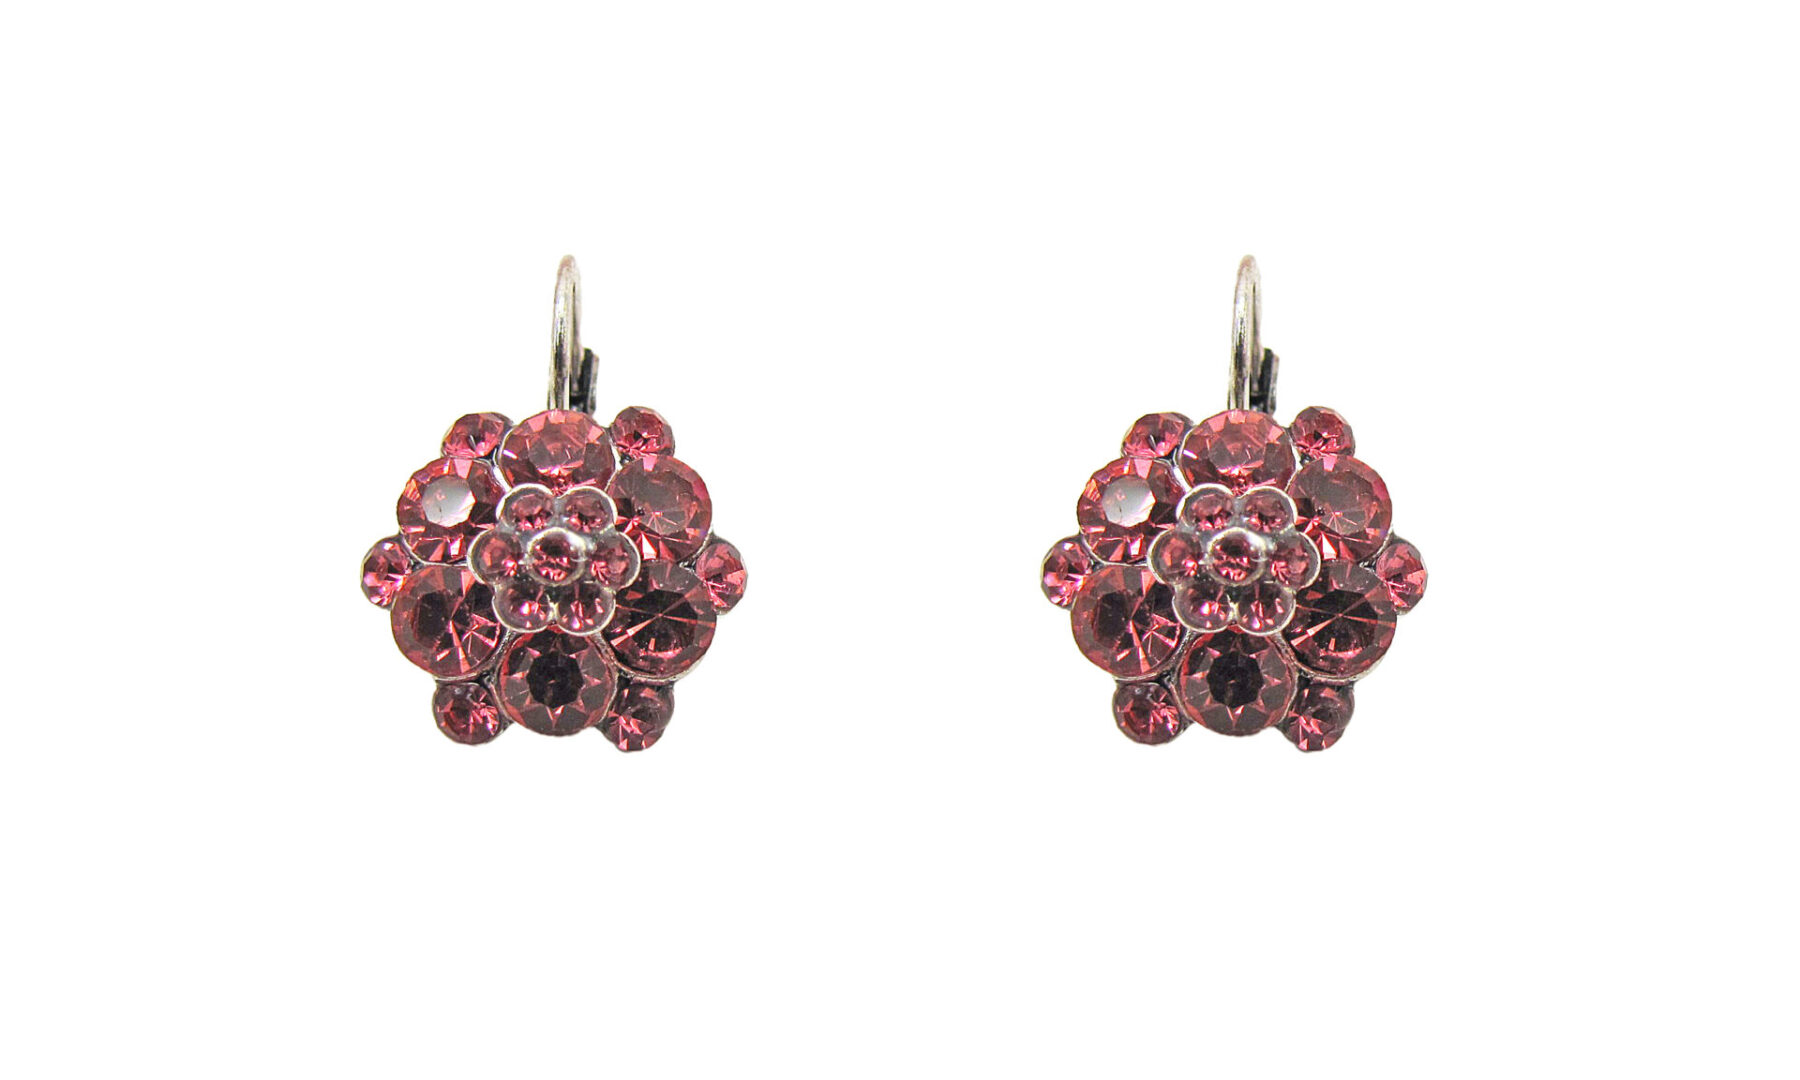 earrings with red gems arranged in florets